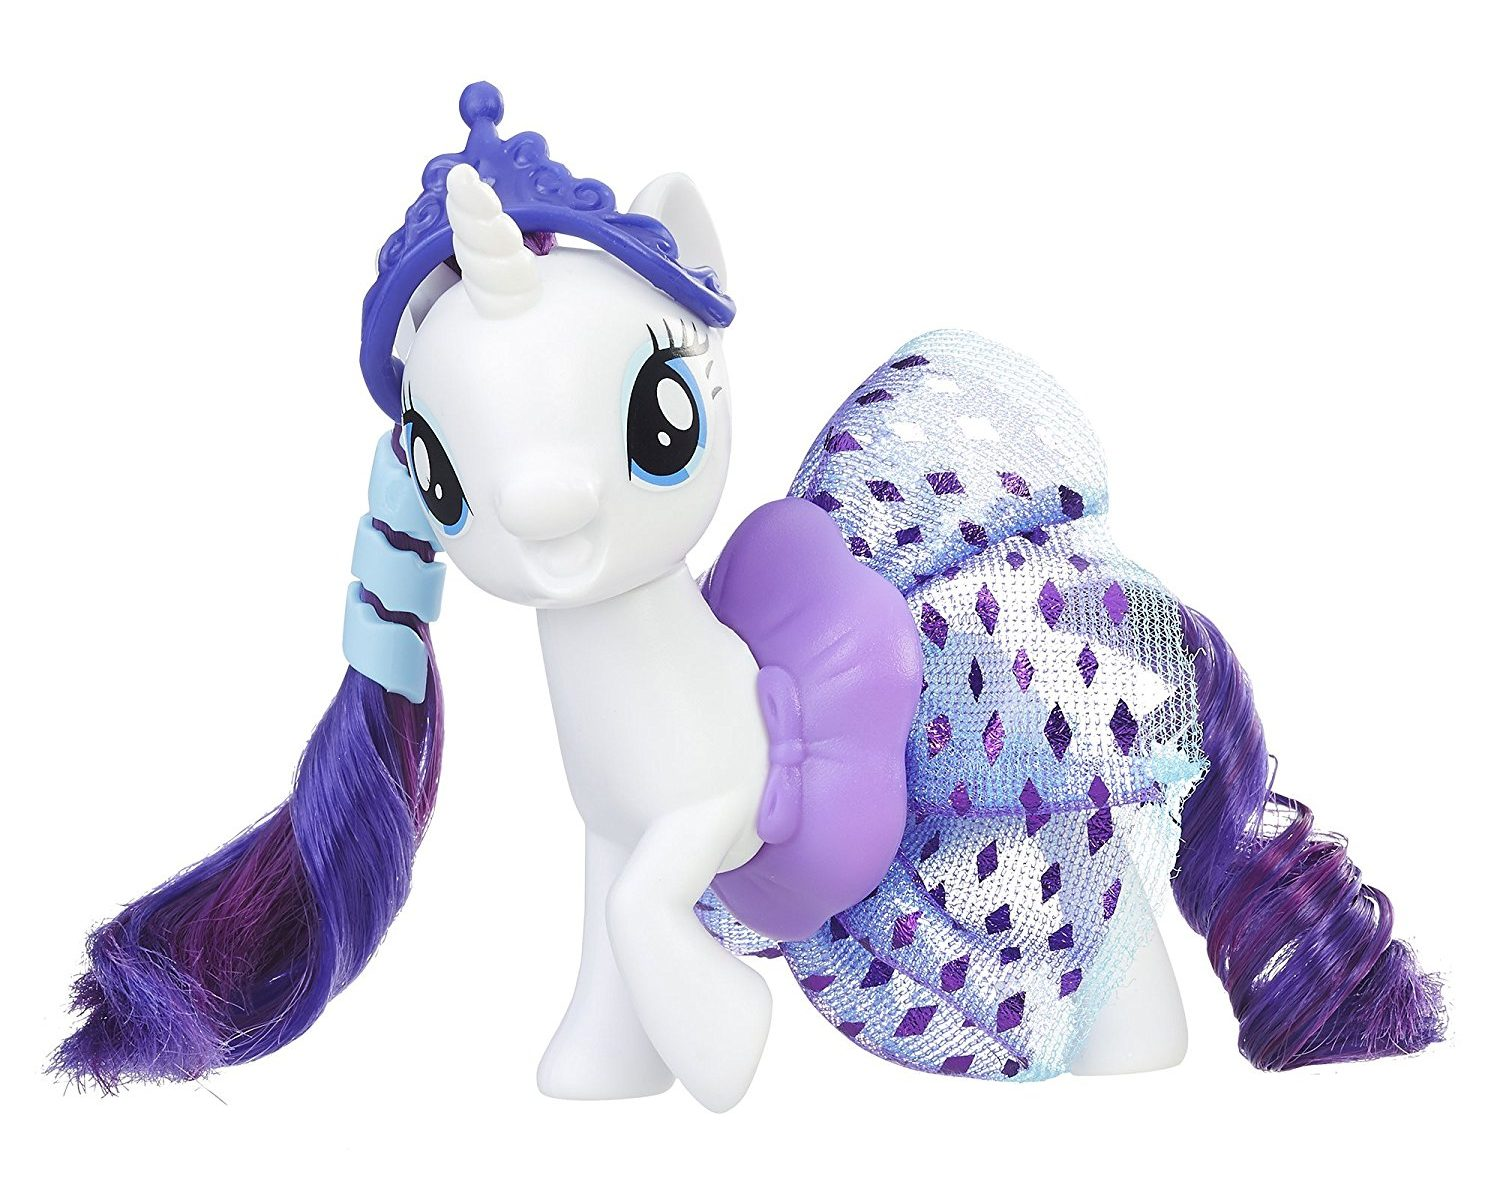 Make Up Care Bears, My Little Pony Made Up, My Little Pony Make Up Girl, My Little Pony Sea Swirl, My Little Pony Dress Up Games ...